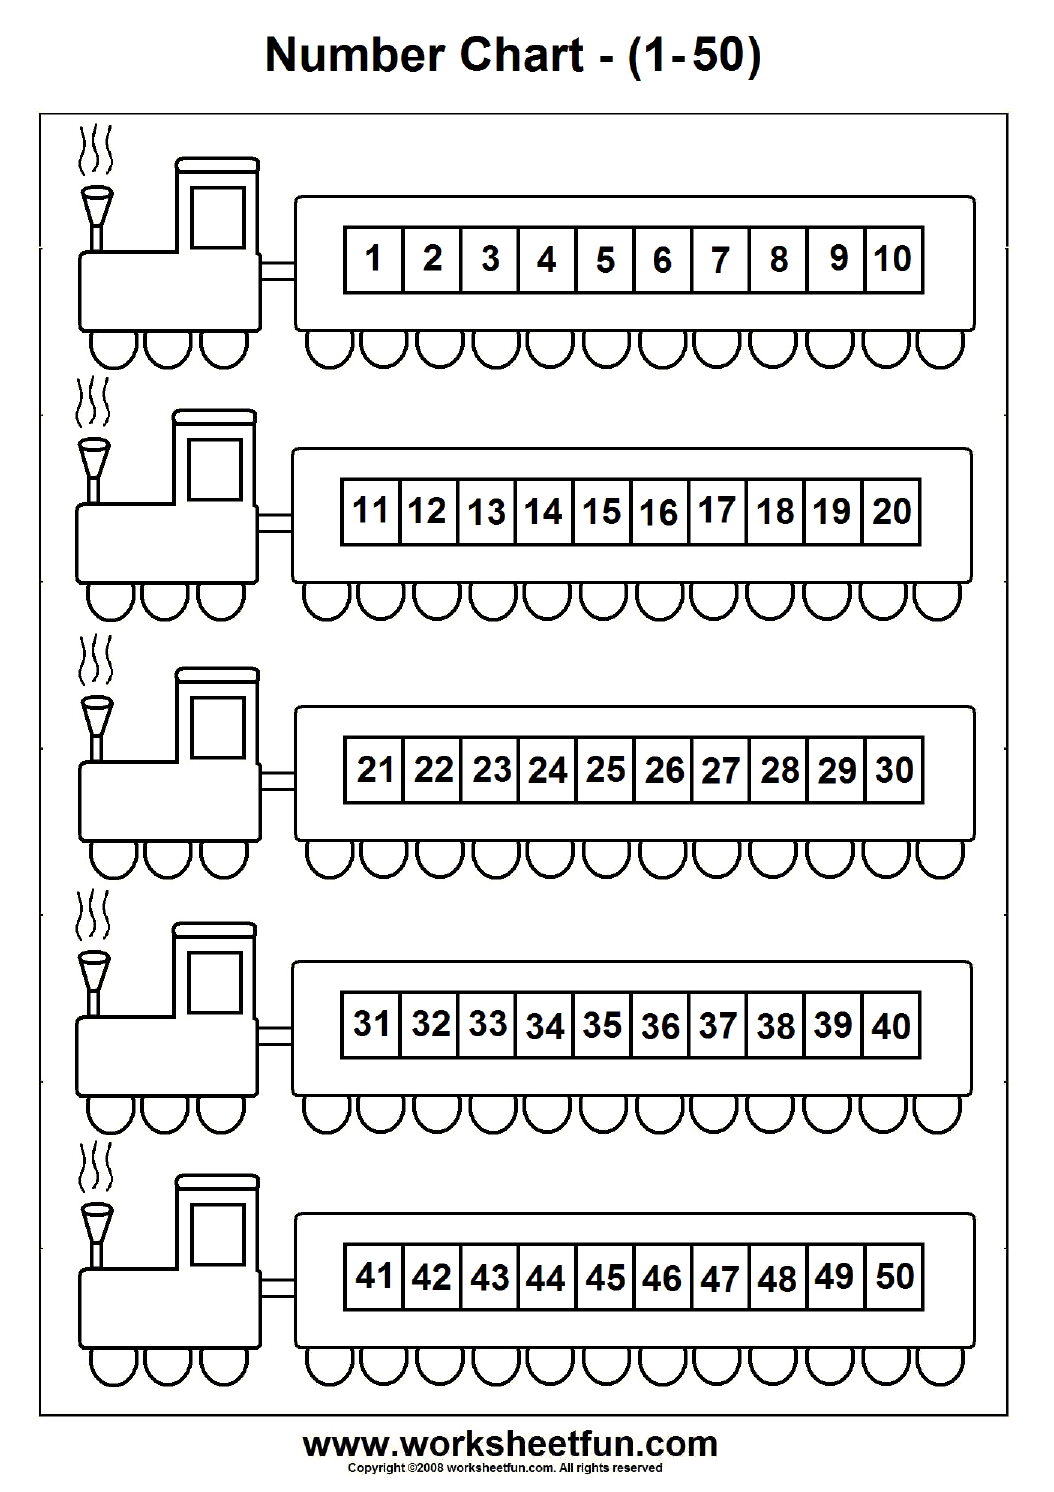 Number Chart 1 50